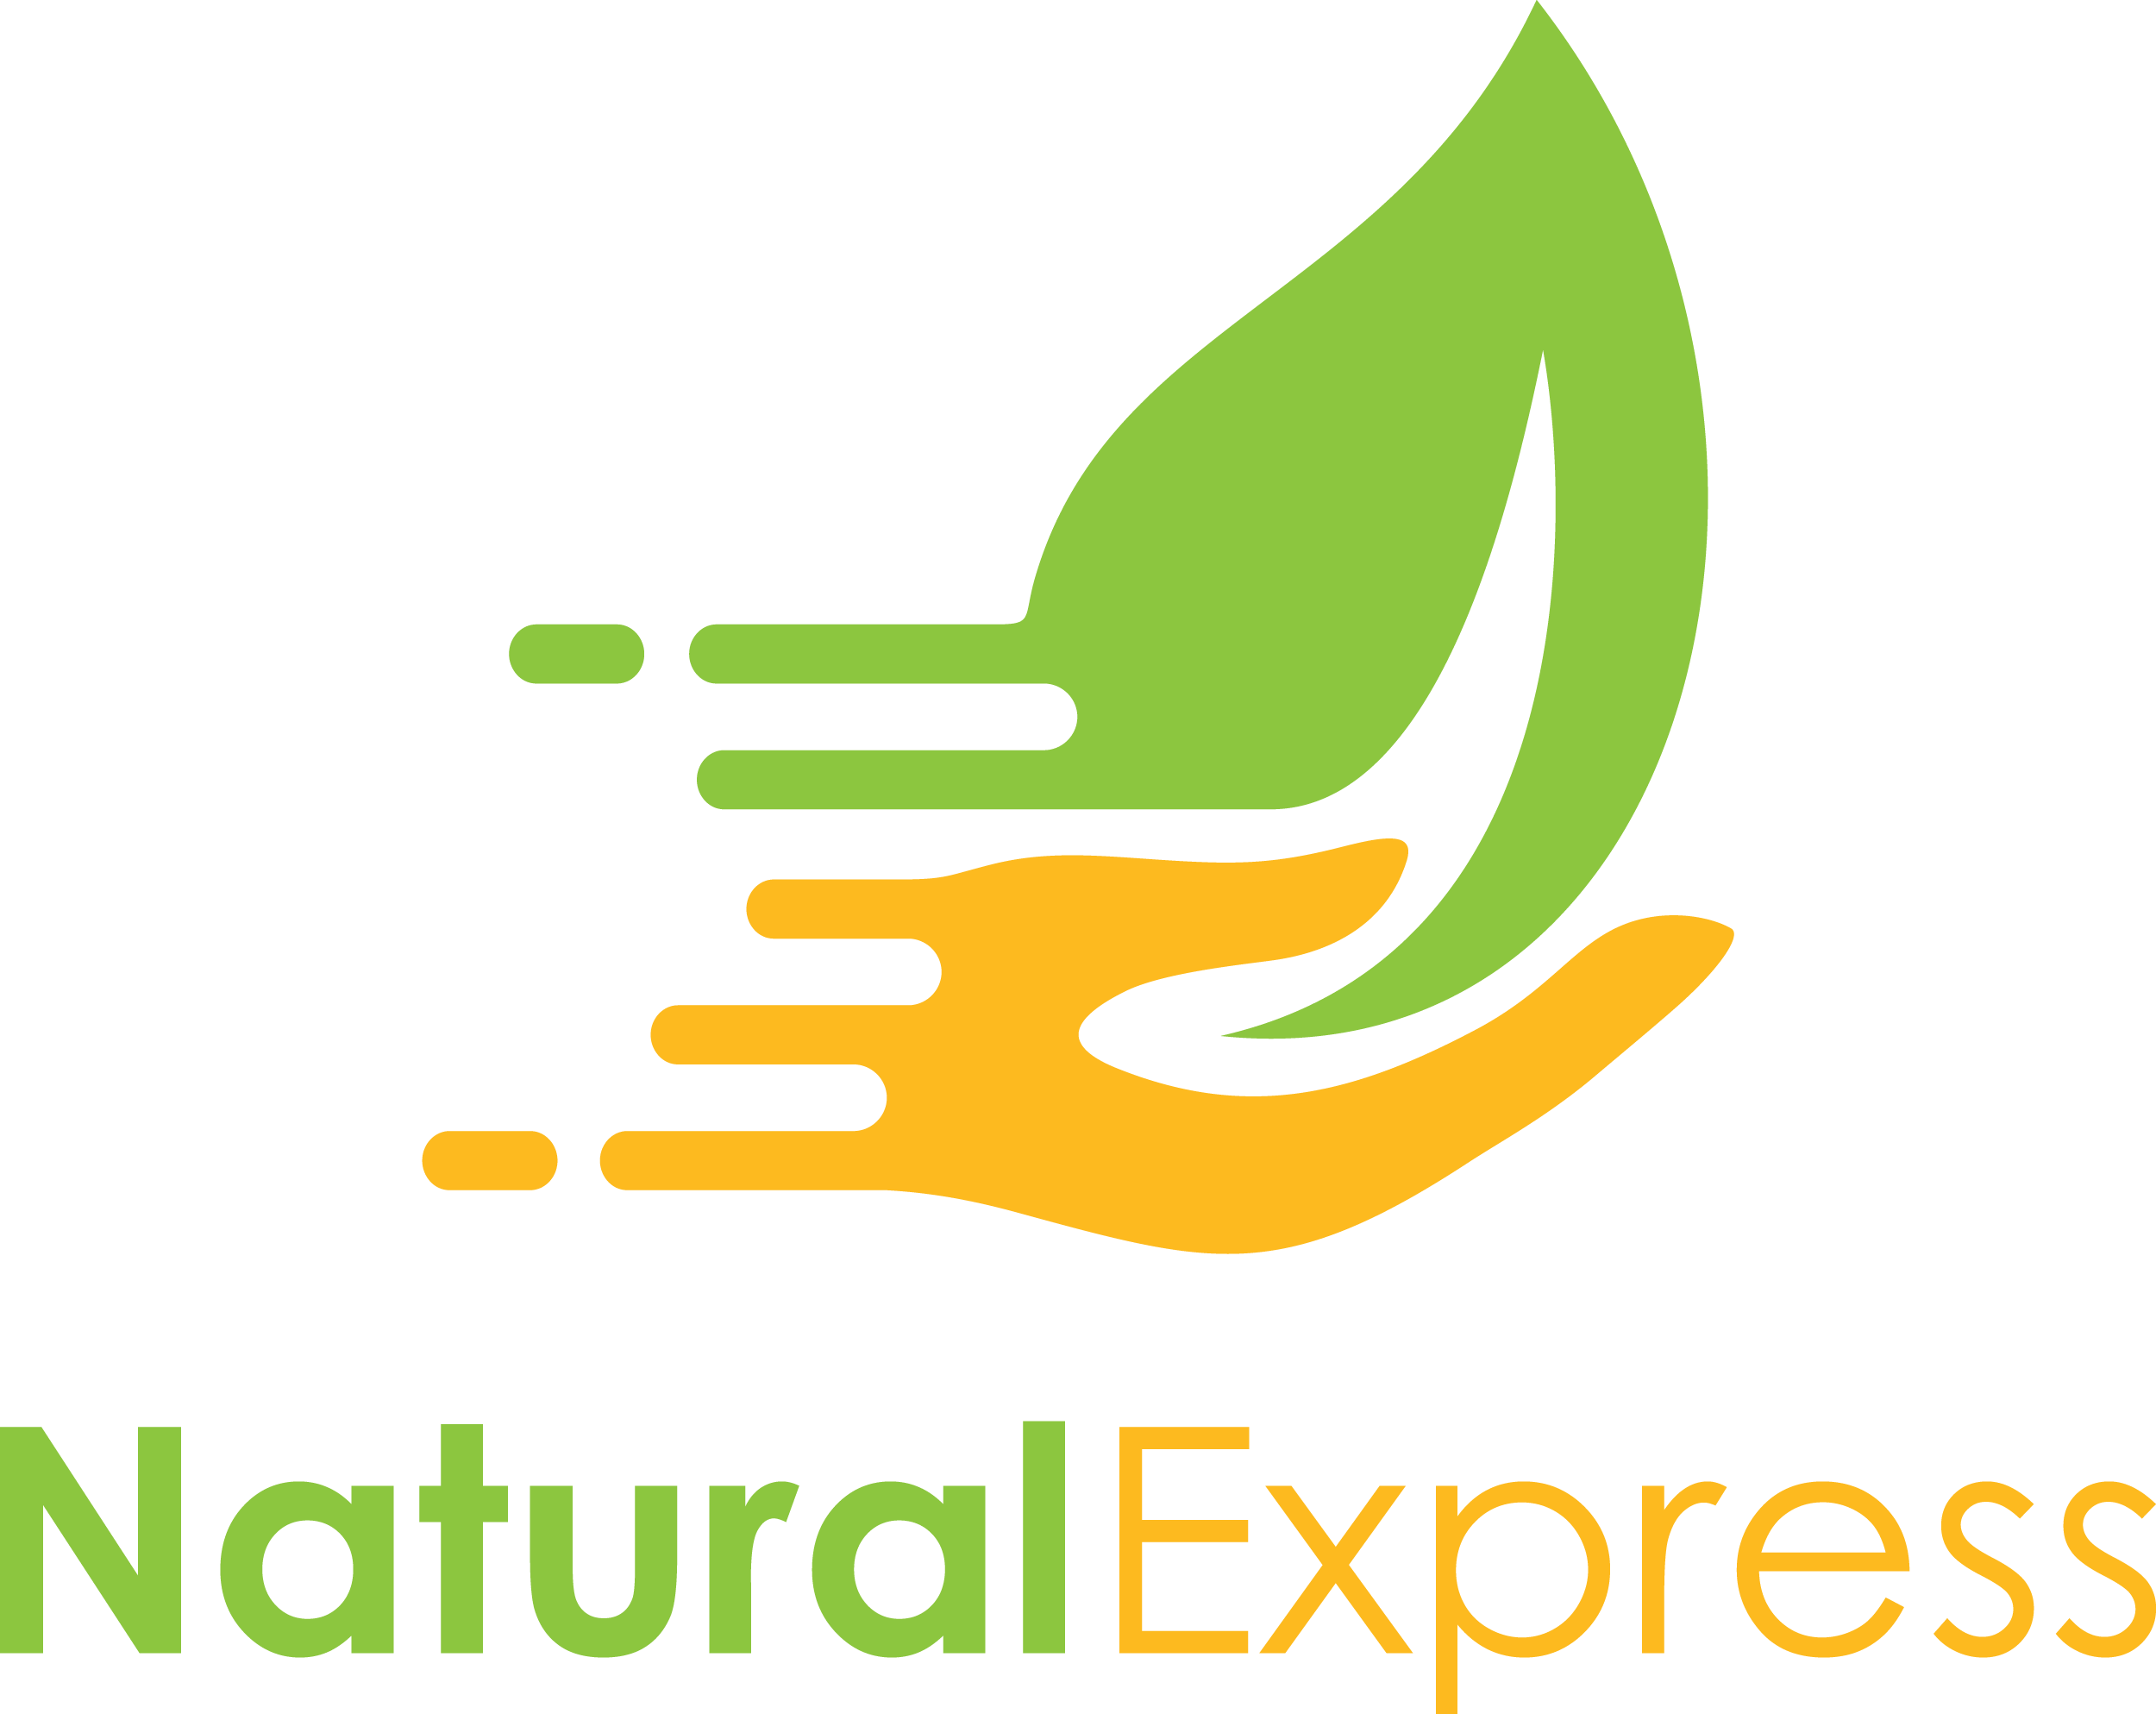 Create a lush logo for Natural Express!